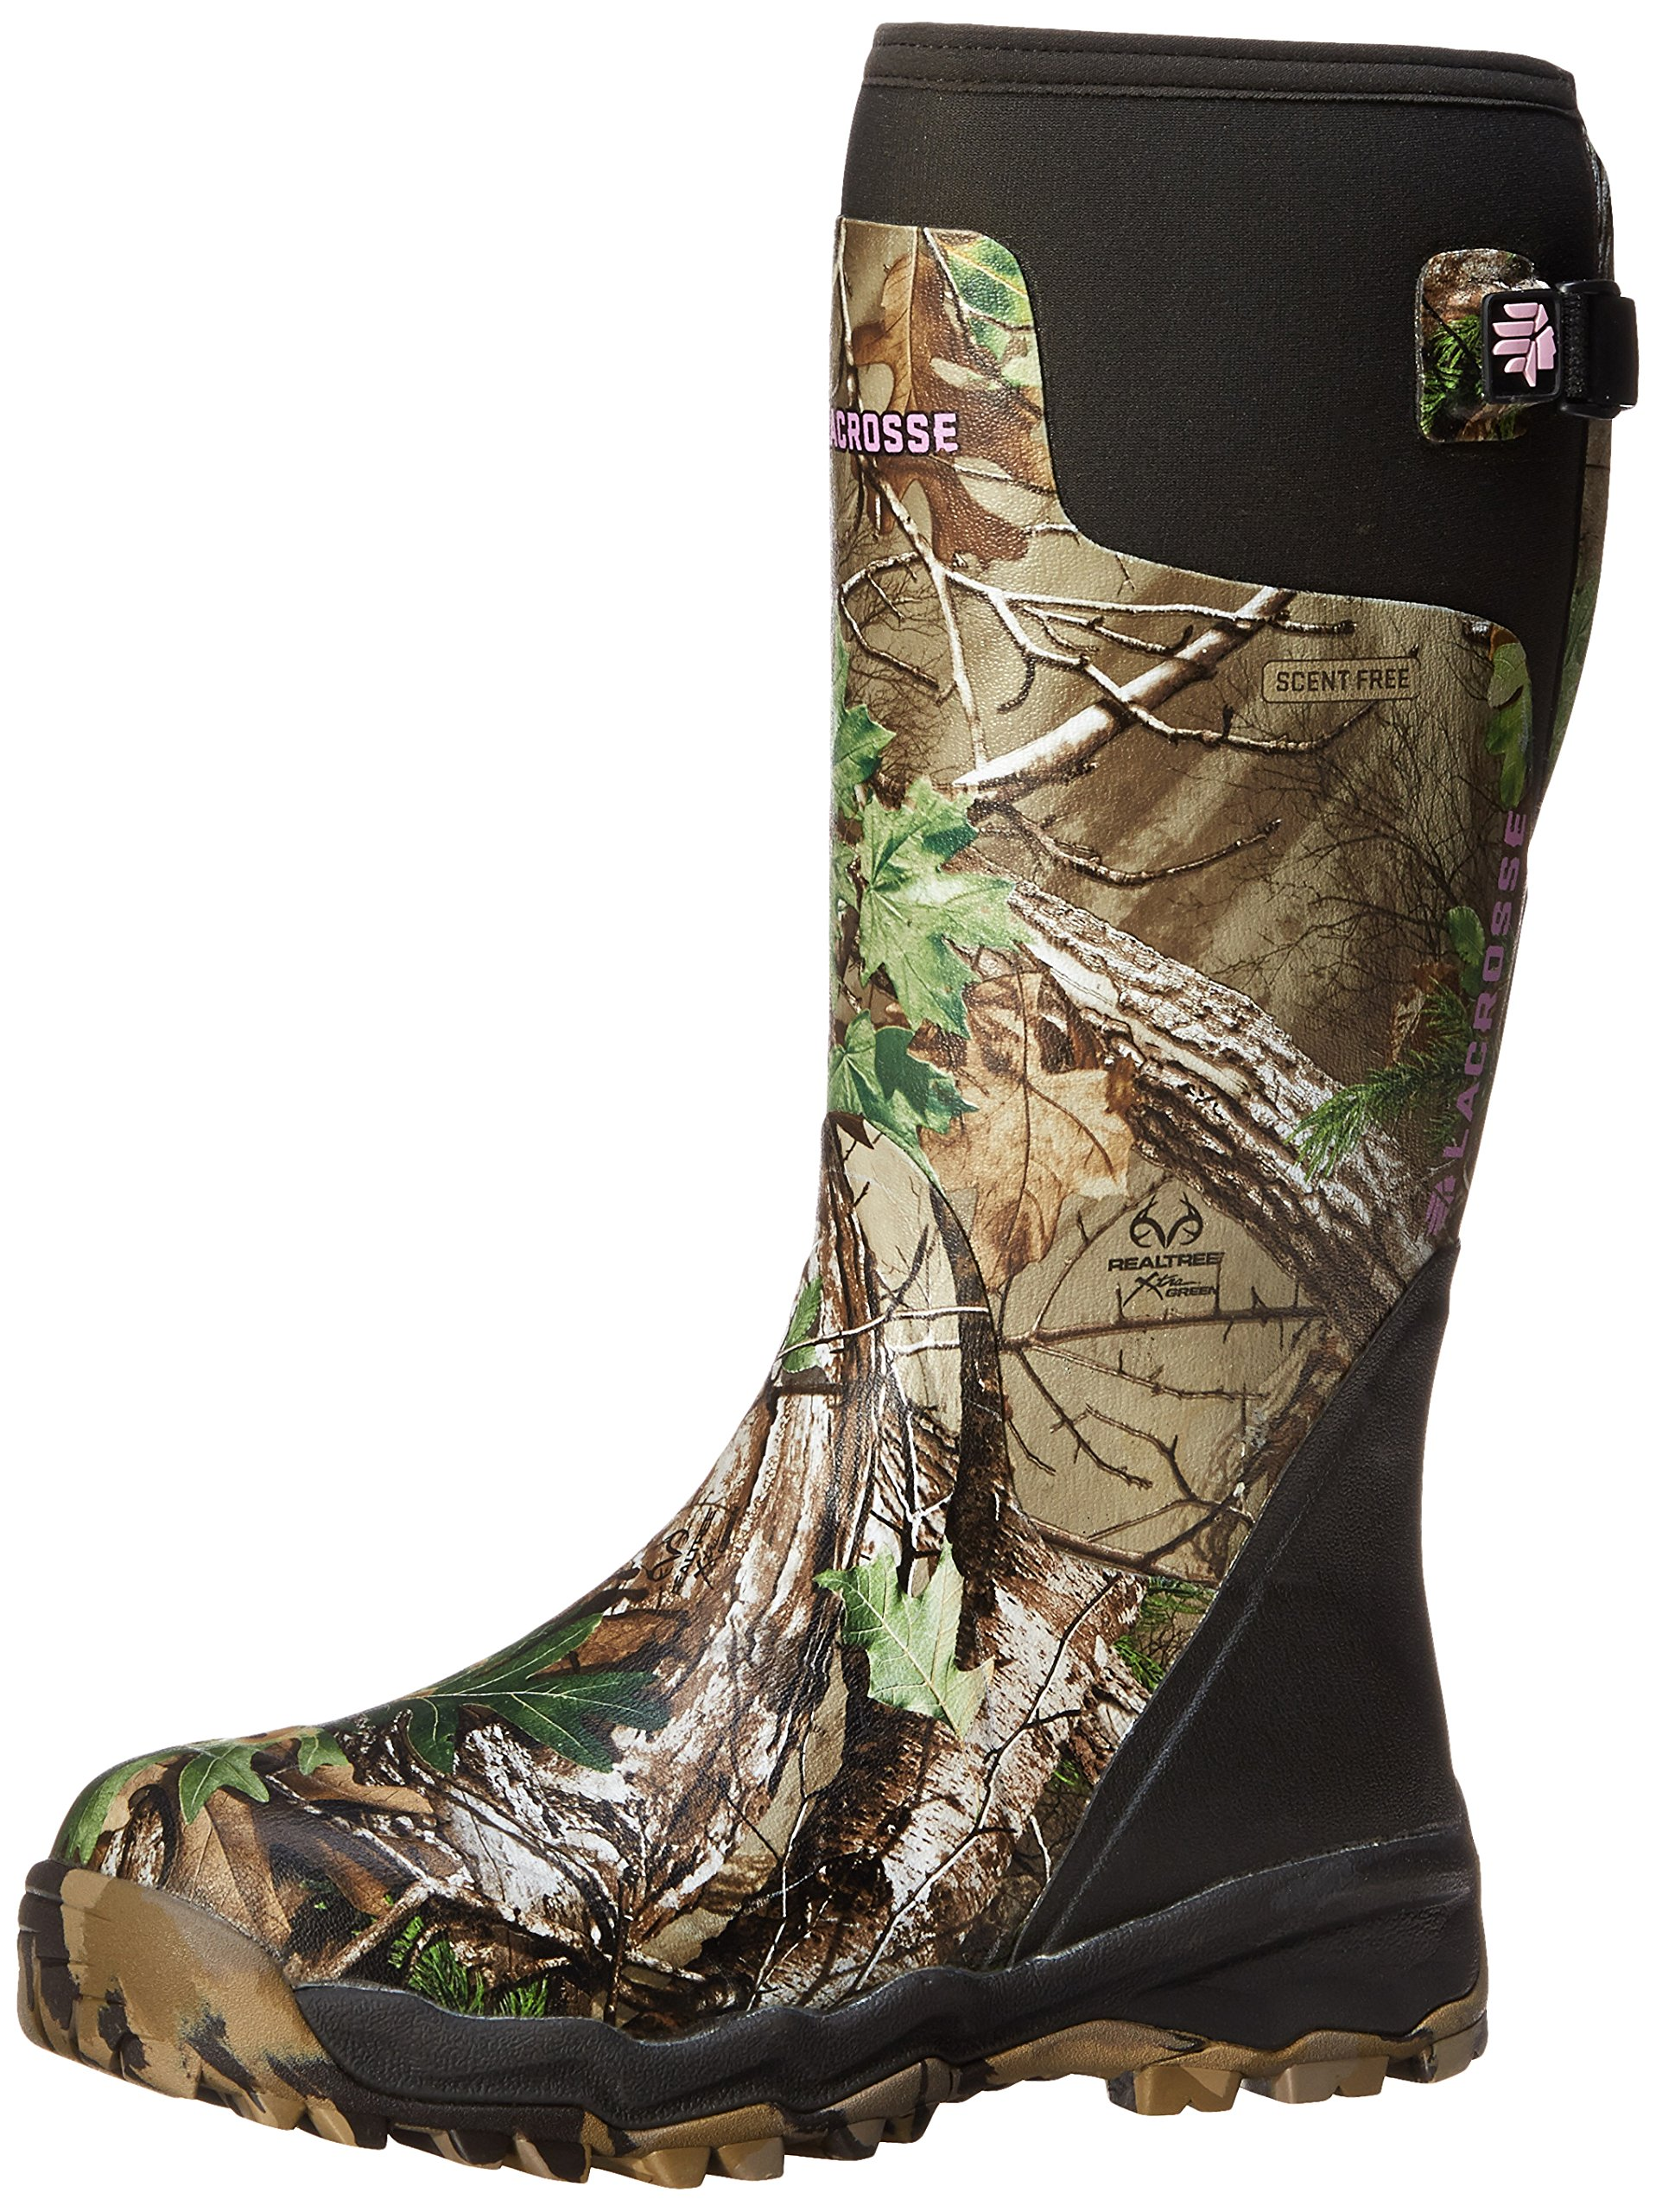 LaCrosse Women's Alphaburly Pro 15 Realtree APG Hunting Boot,Realtree Xtra Green,9 M US